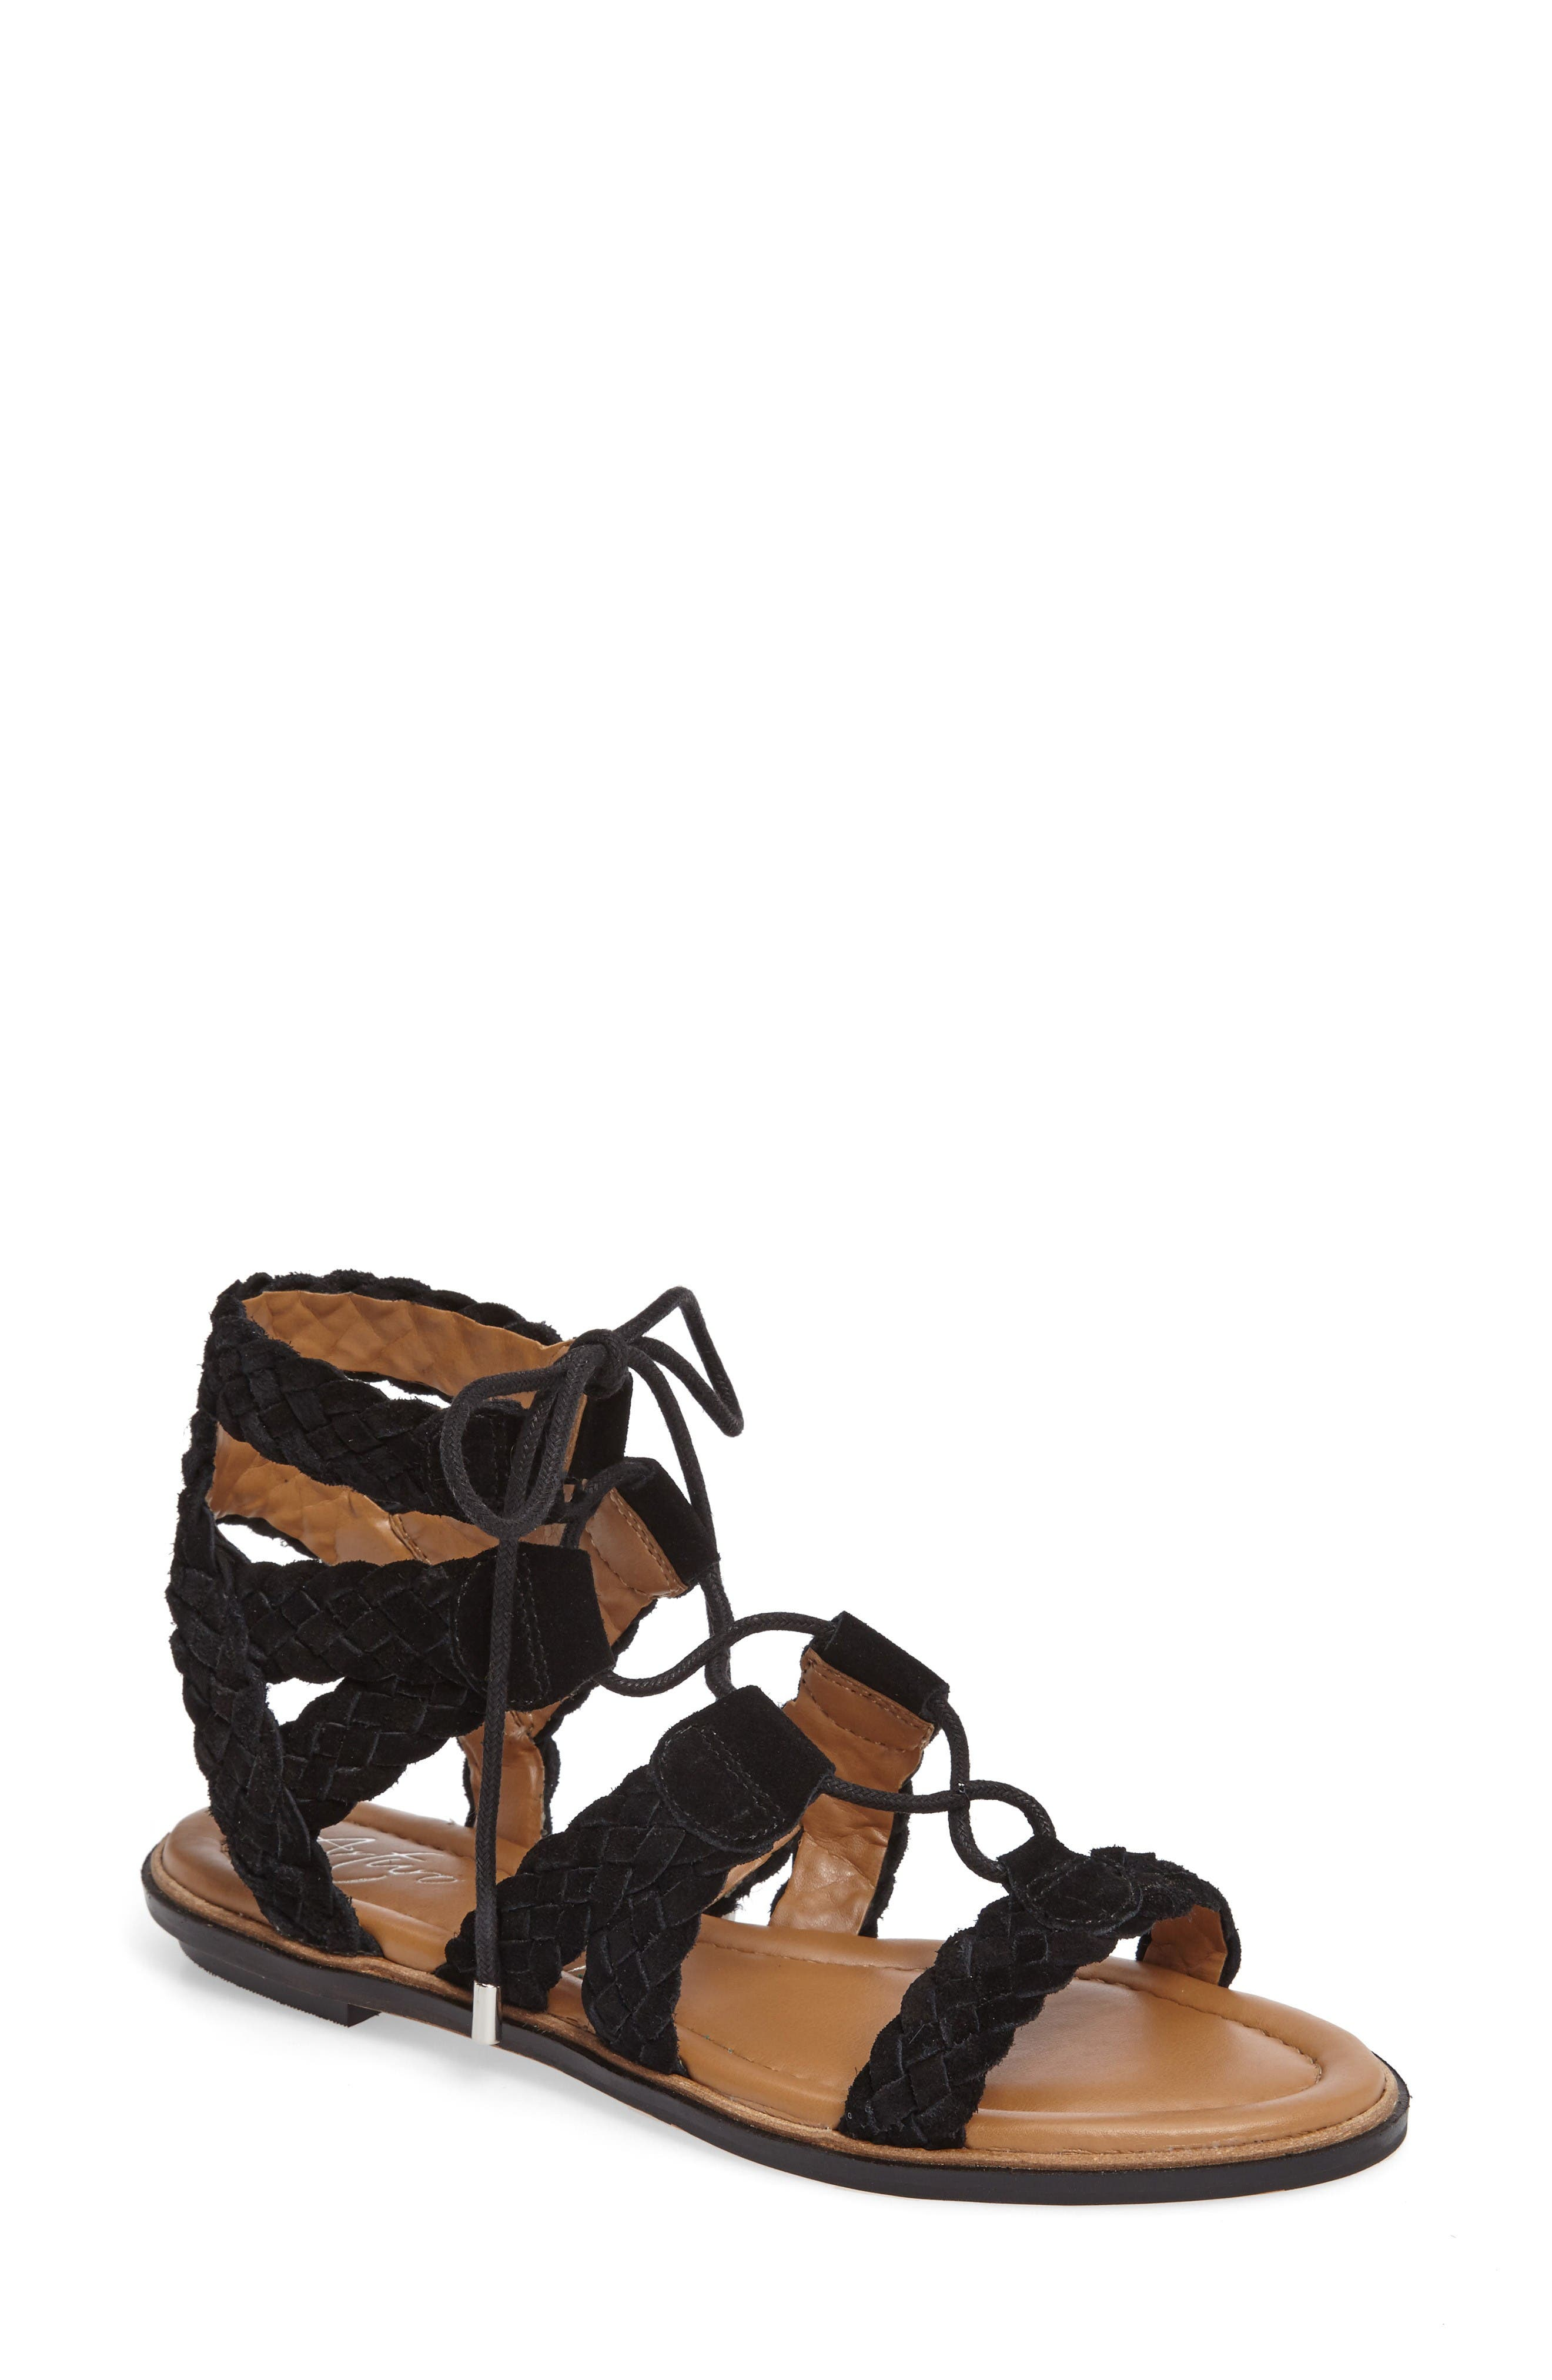 Alternate Image 1 Selected - Arturo Chiang Cassie Lace-Up Sandal (Women)